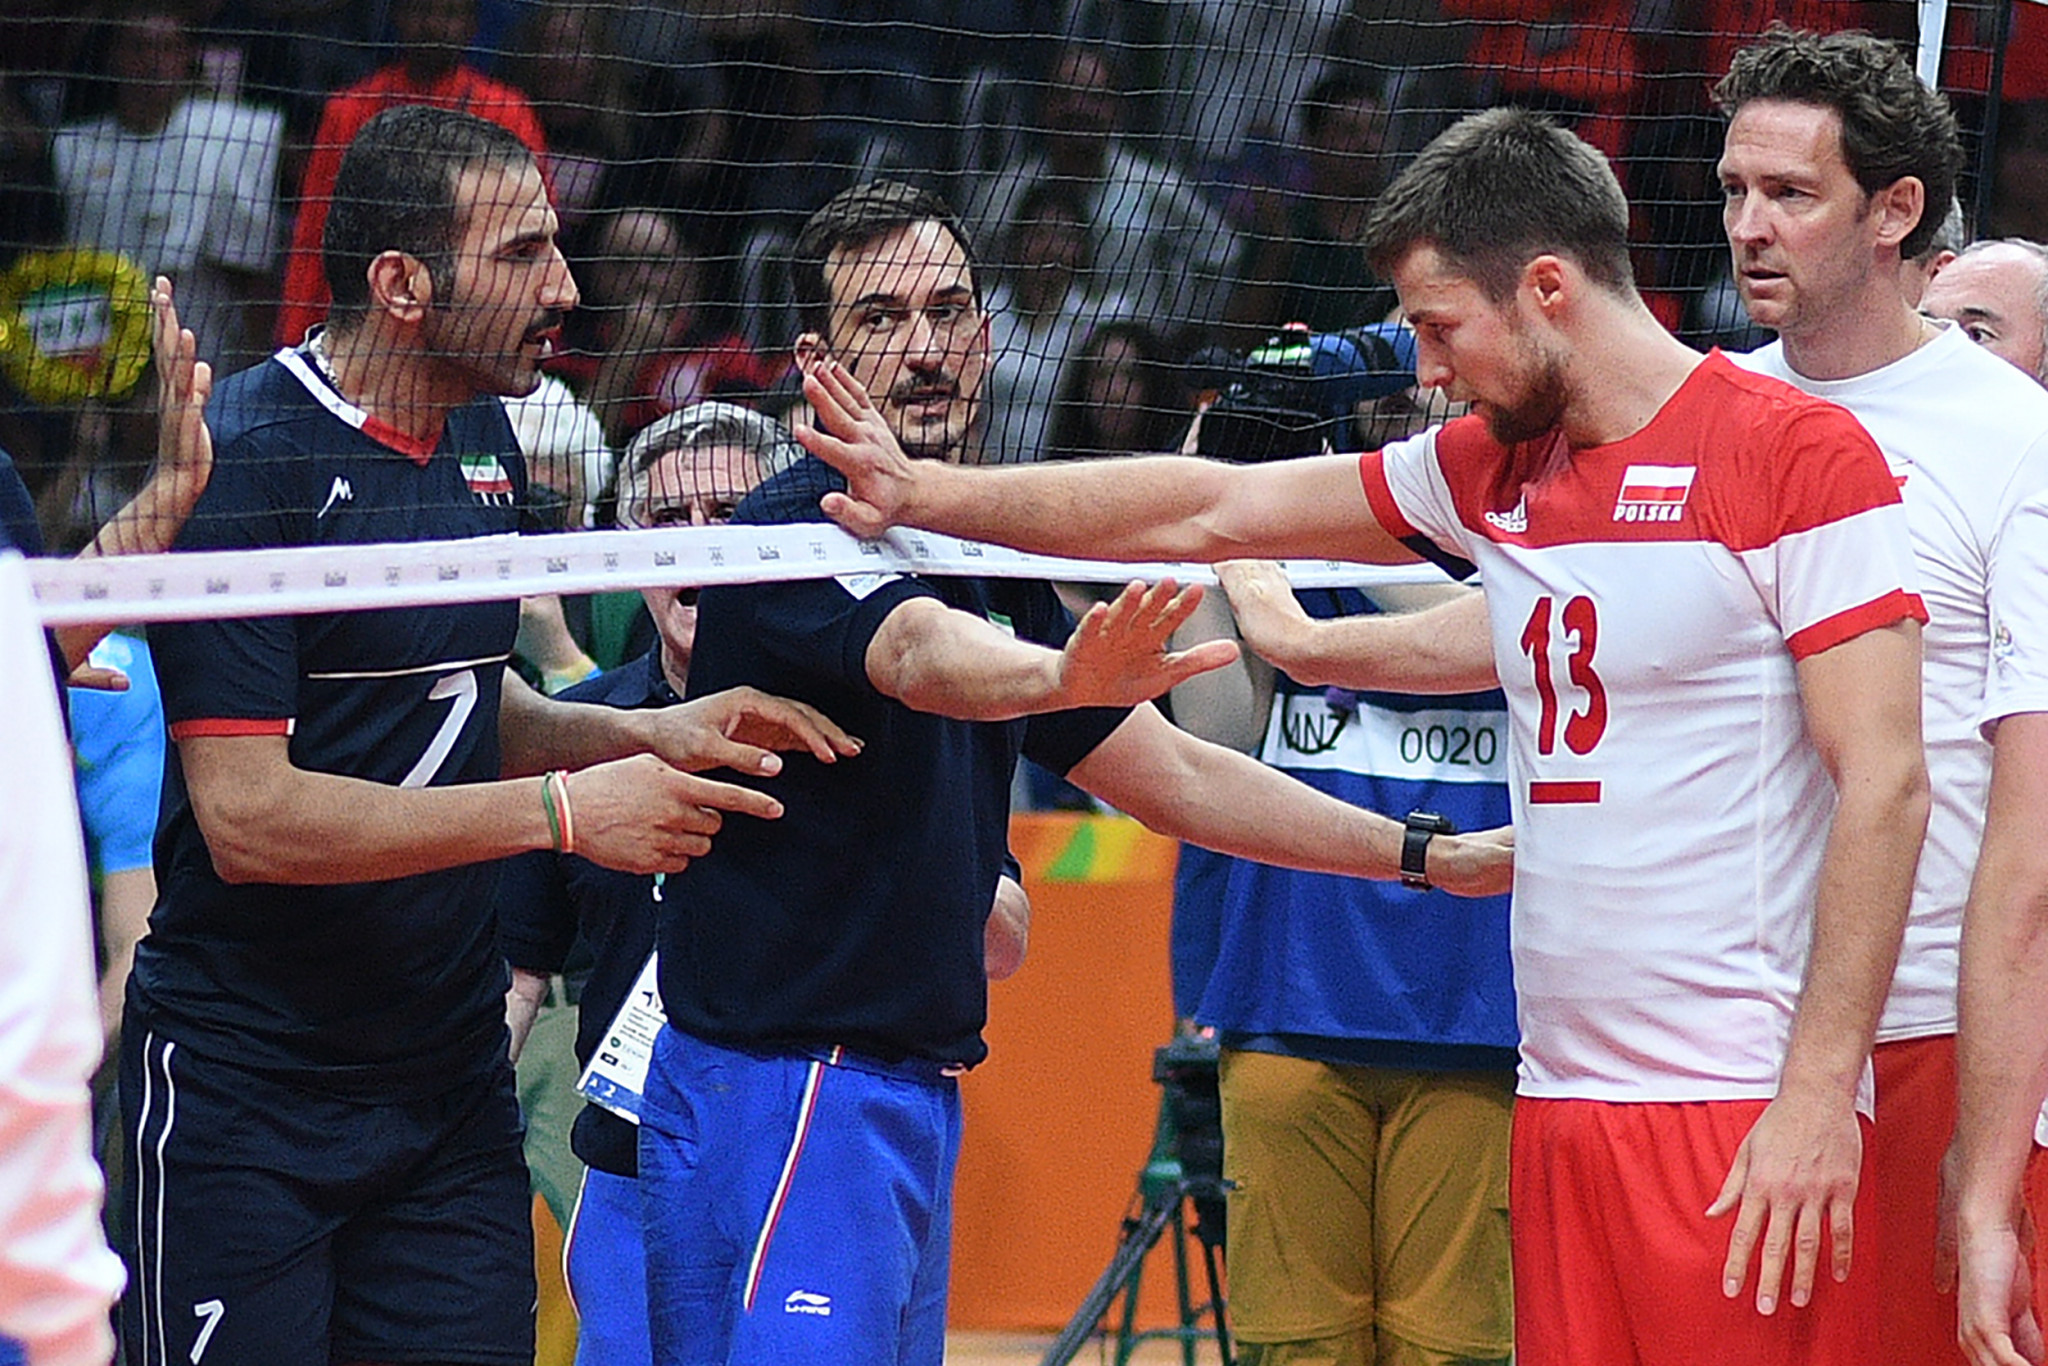 Michal Kubiak was a member of the Poland team that played against Iran in a highly-charged match during the Olympic volleyball tournament at Rio 2016 ©Getty Images